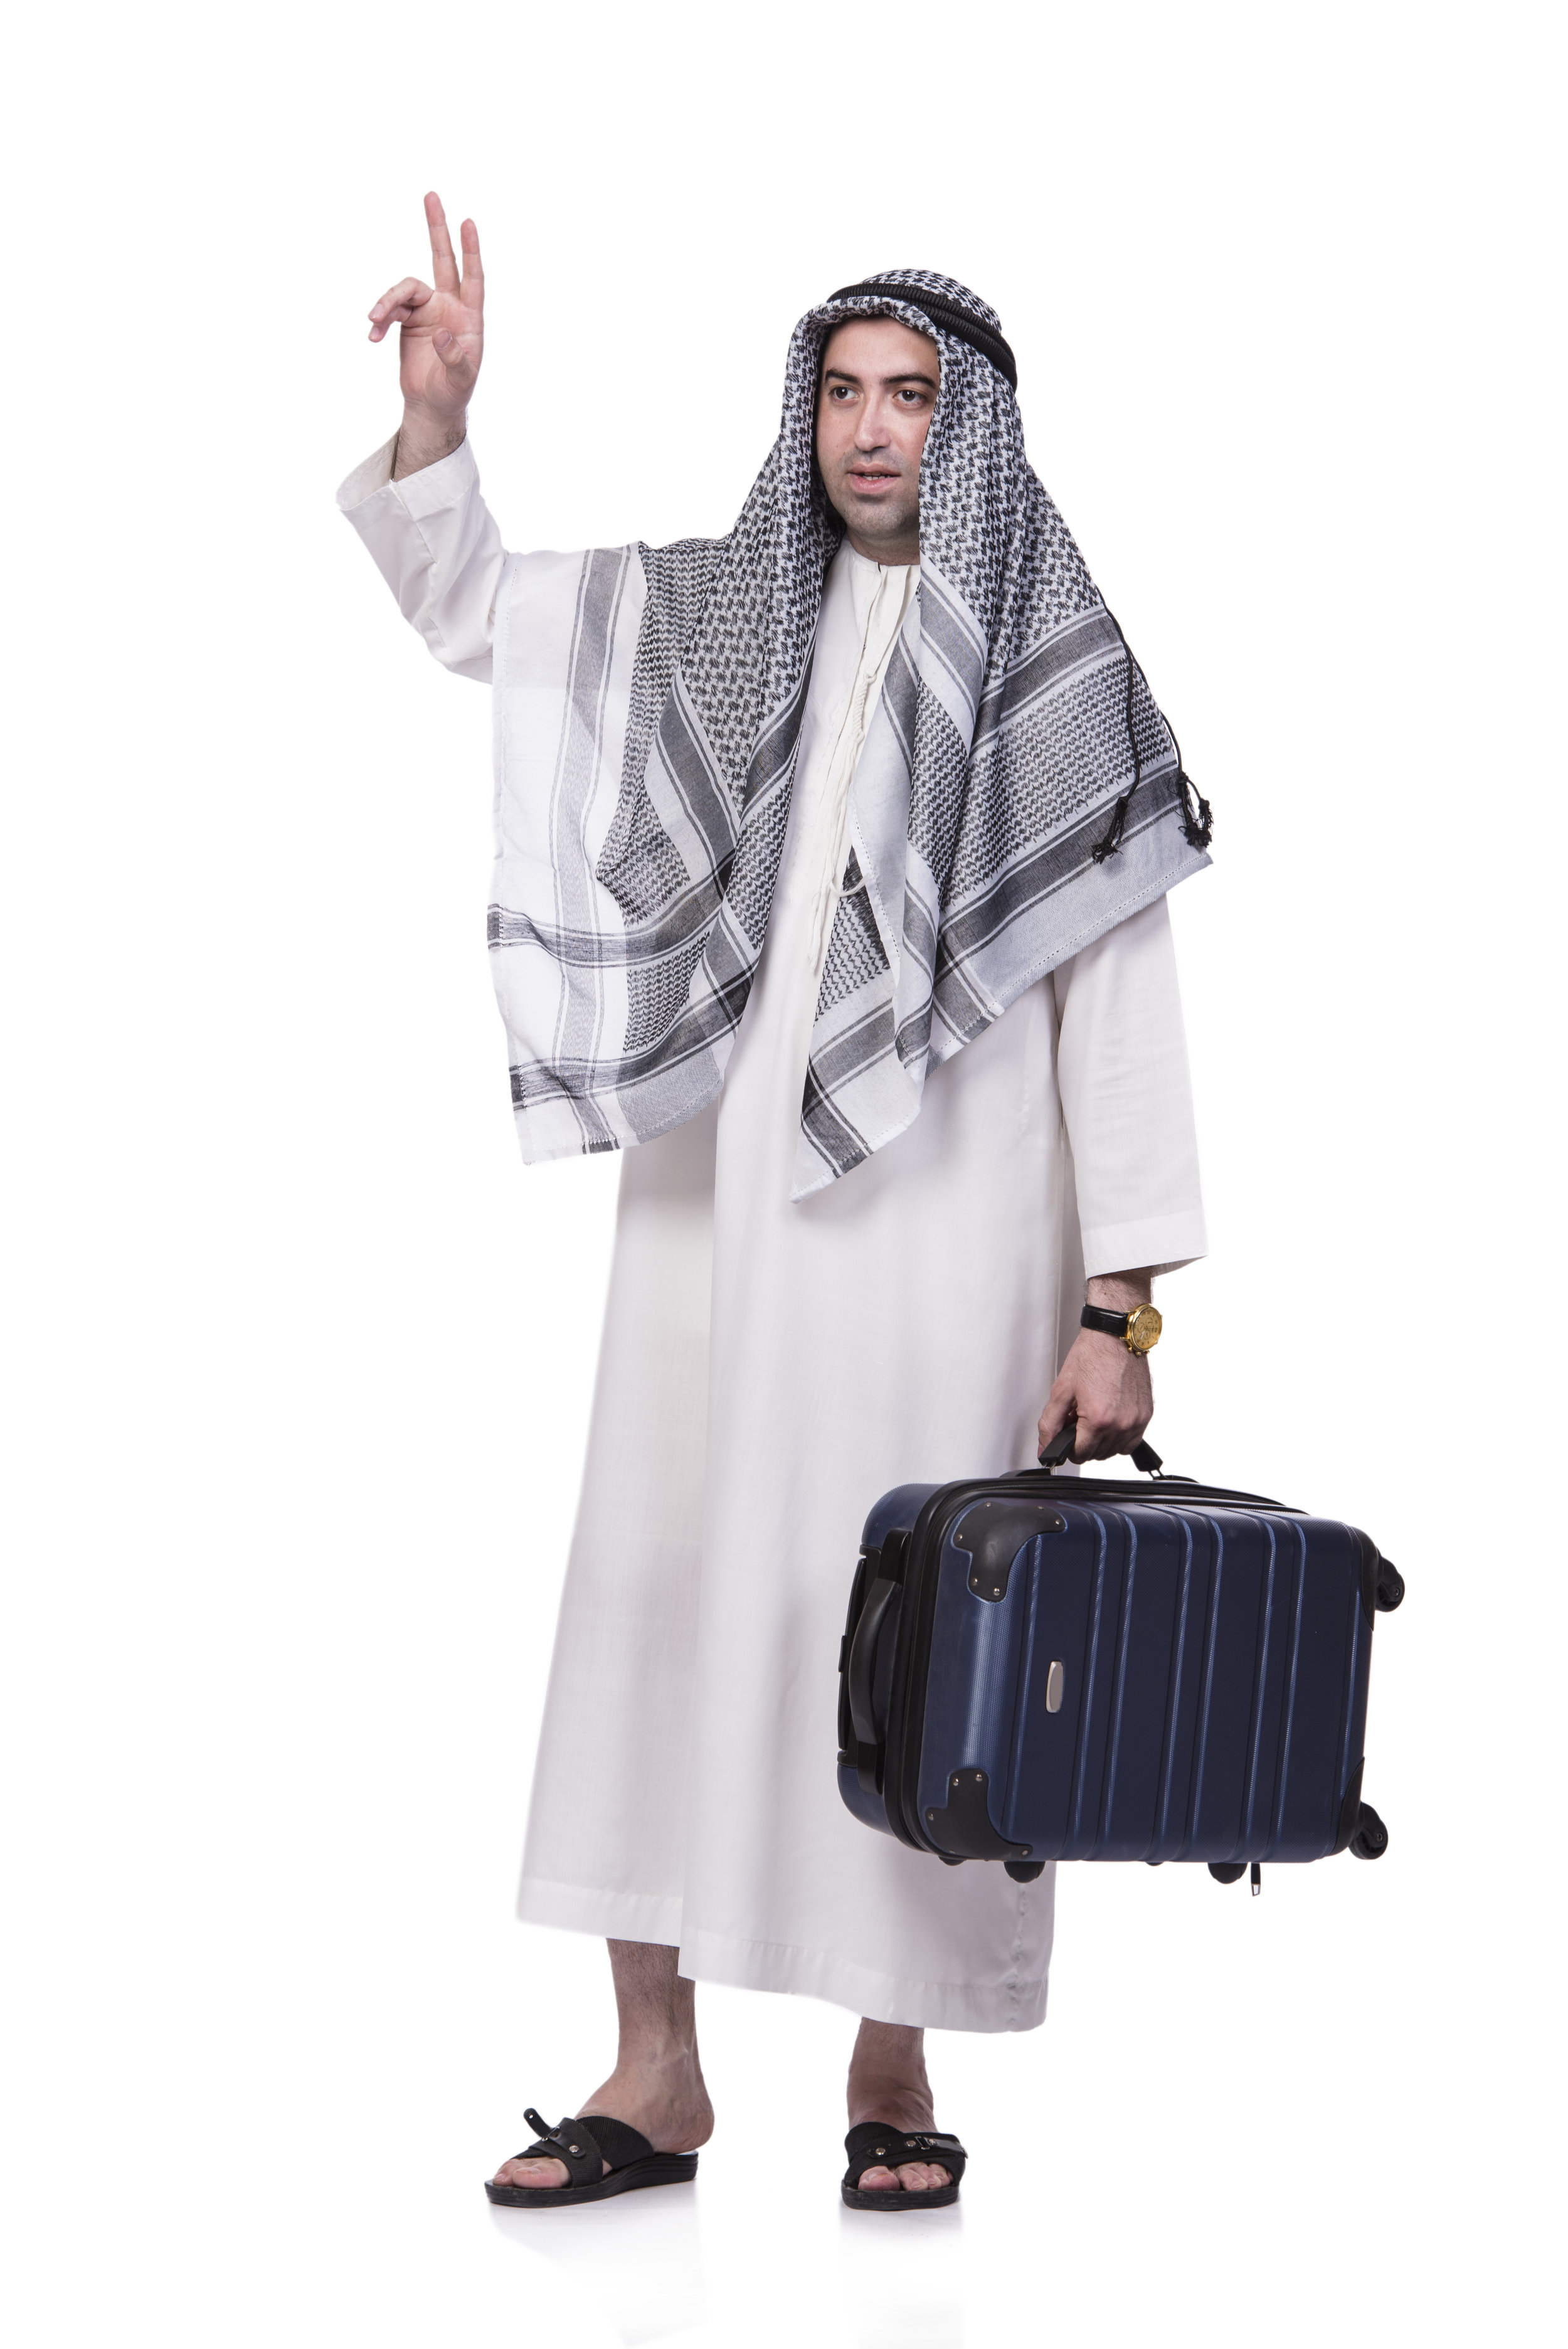 bigstock-Arab-man-with-suitcase-in-trav-138774068.jpg